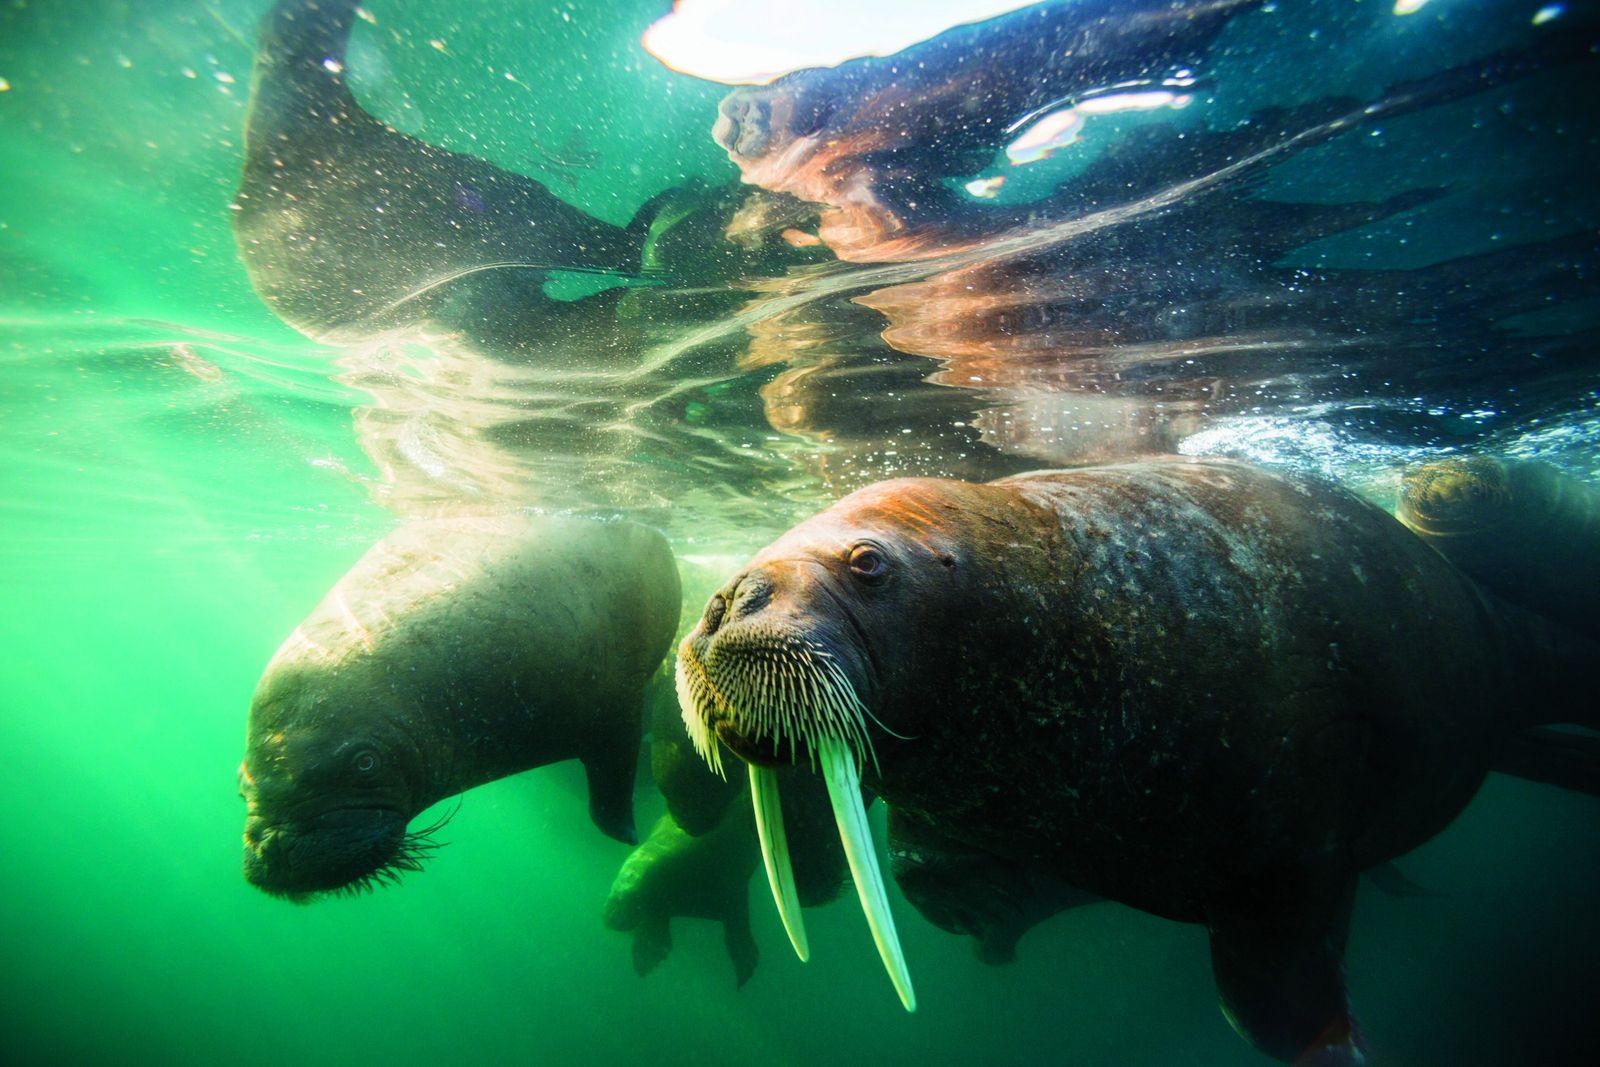 In Franz Josef Land, walruses swim in waters that are now protected after the archipelago was ...